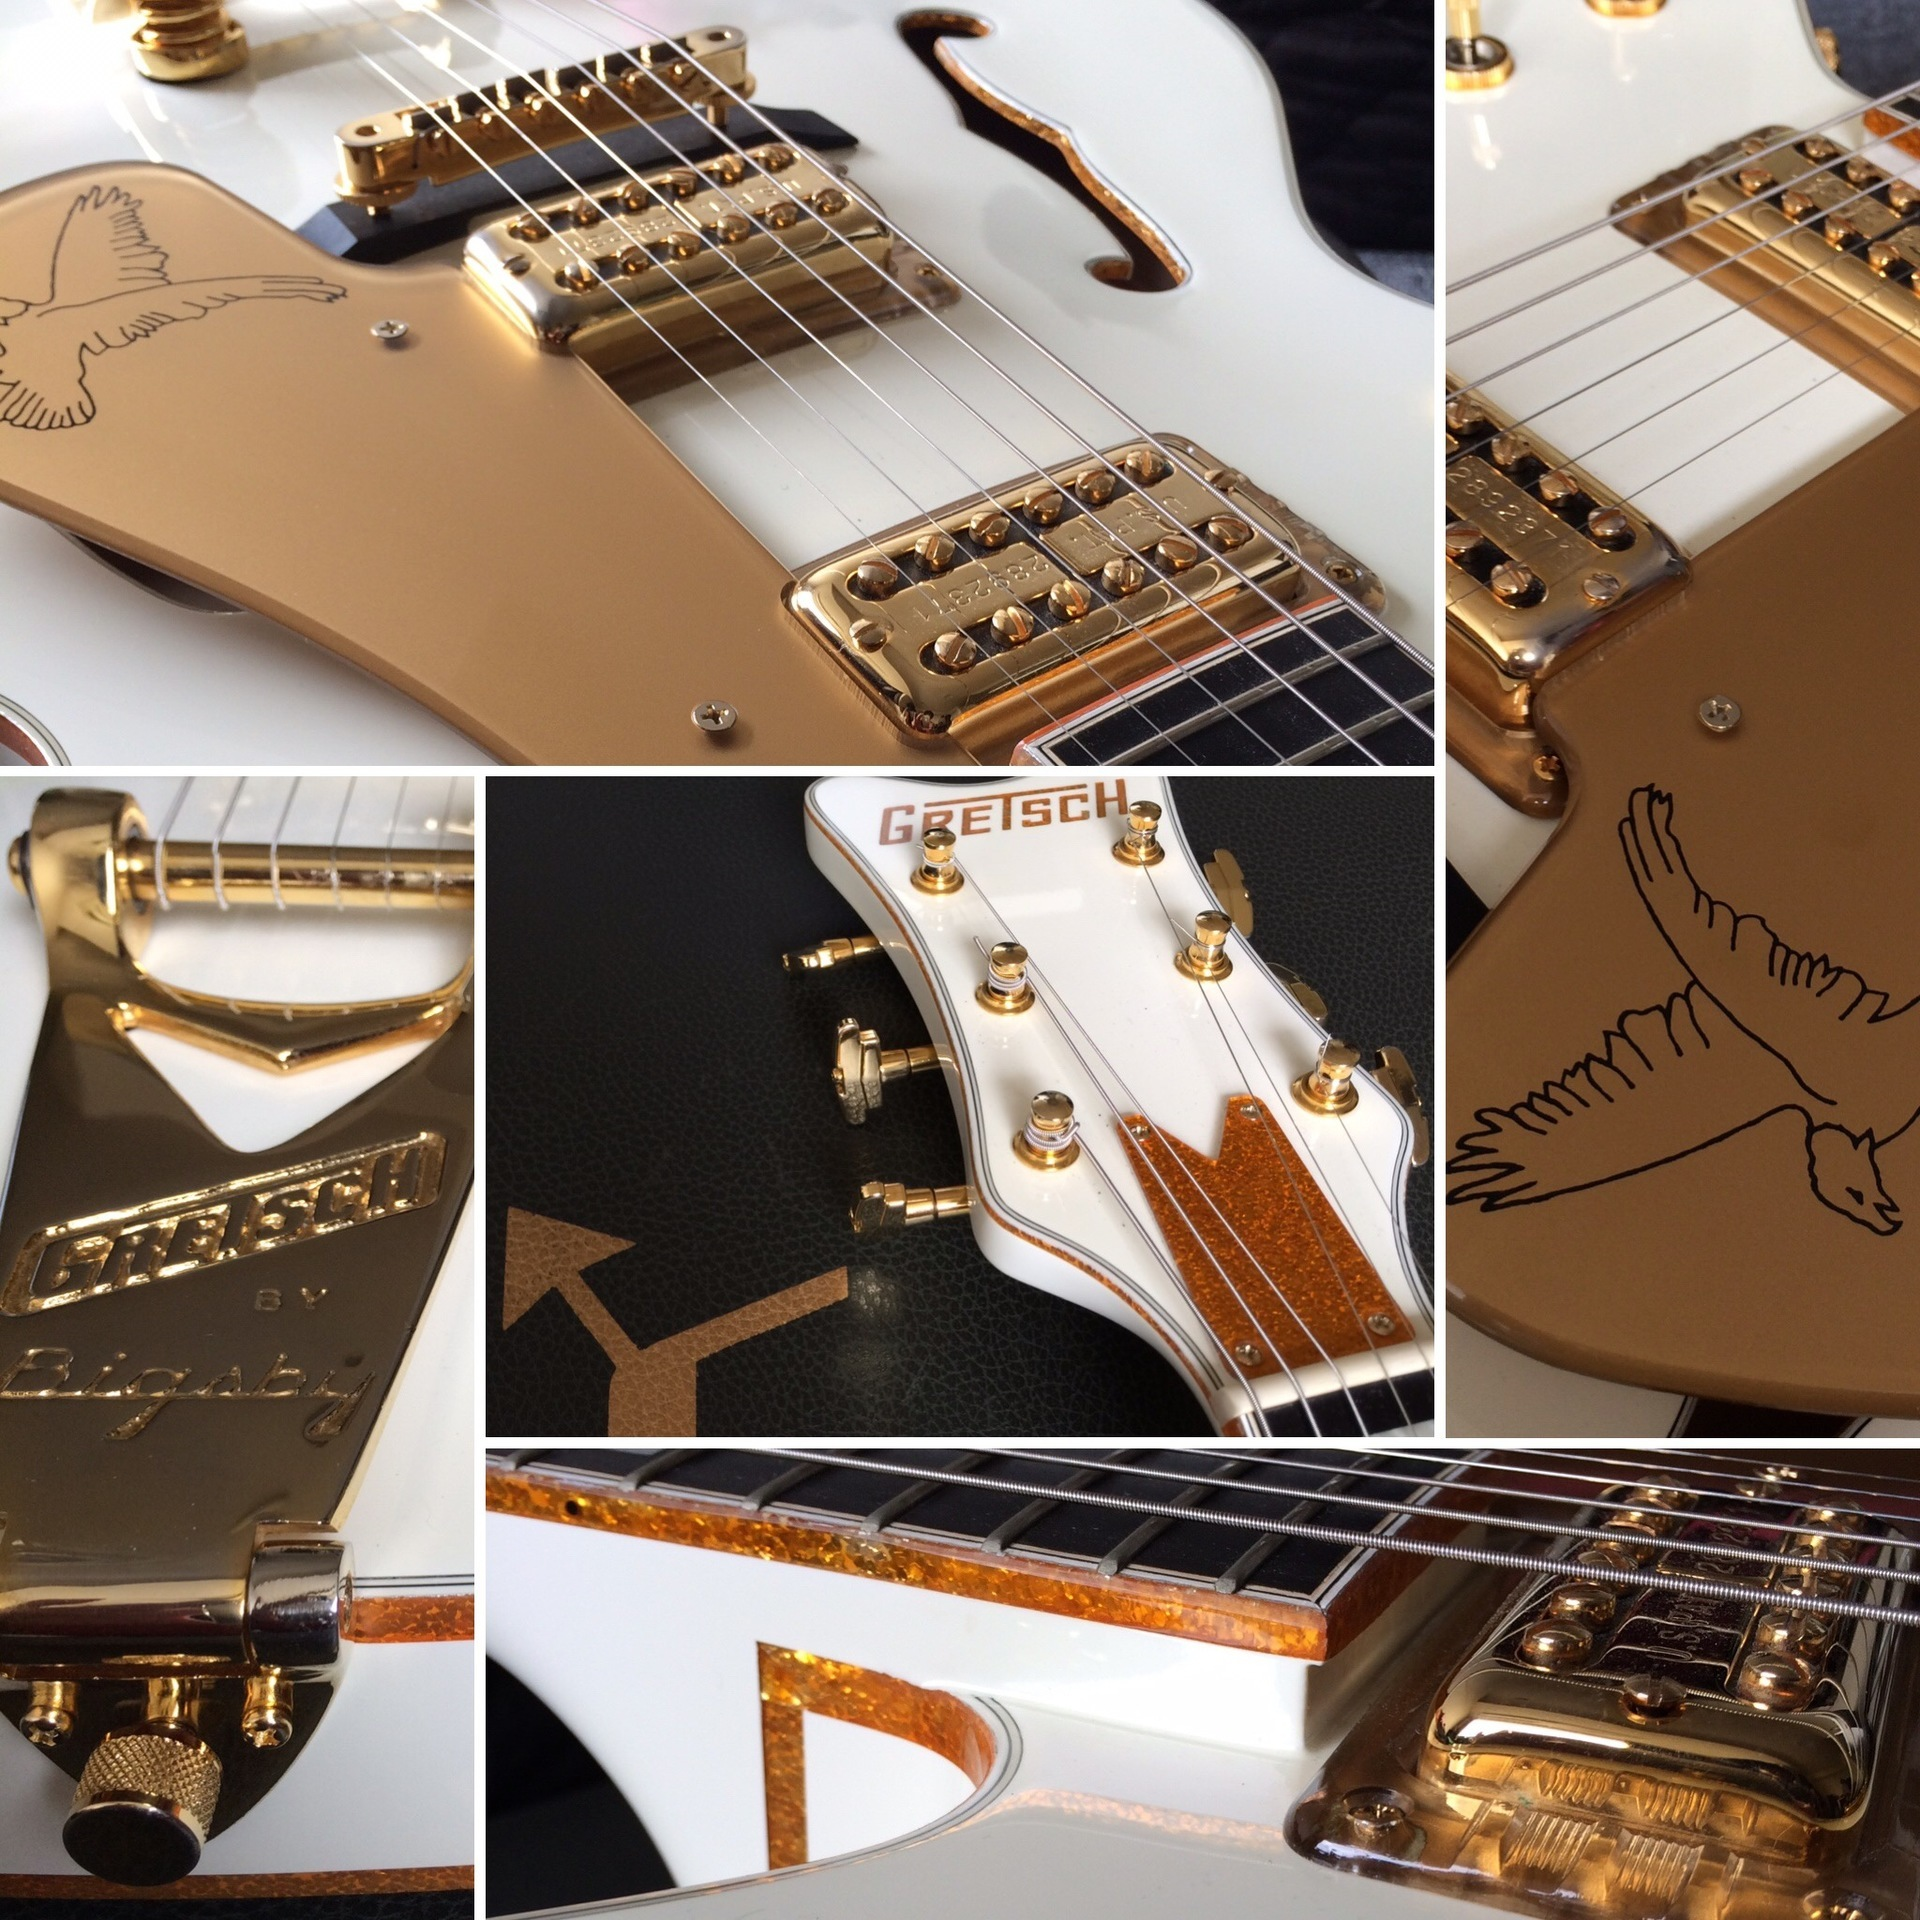 Gretsch_White_Falcon_Double_Cutaway.jpg